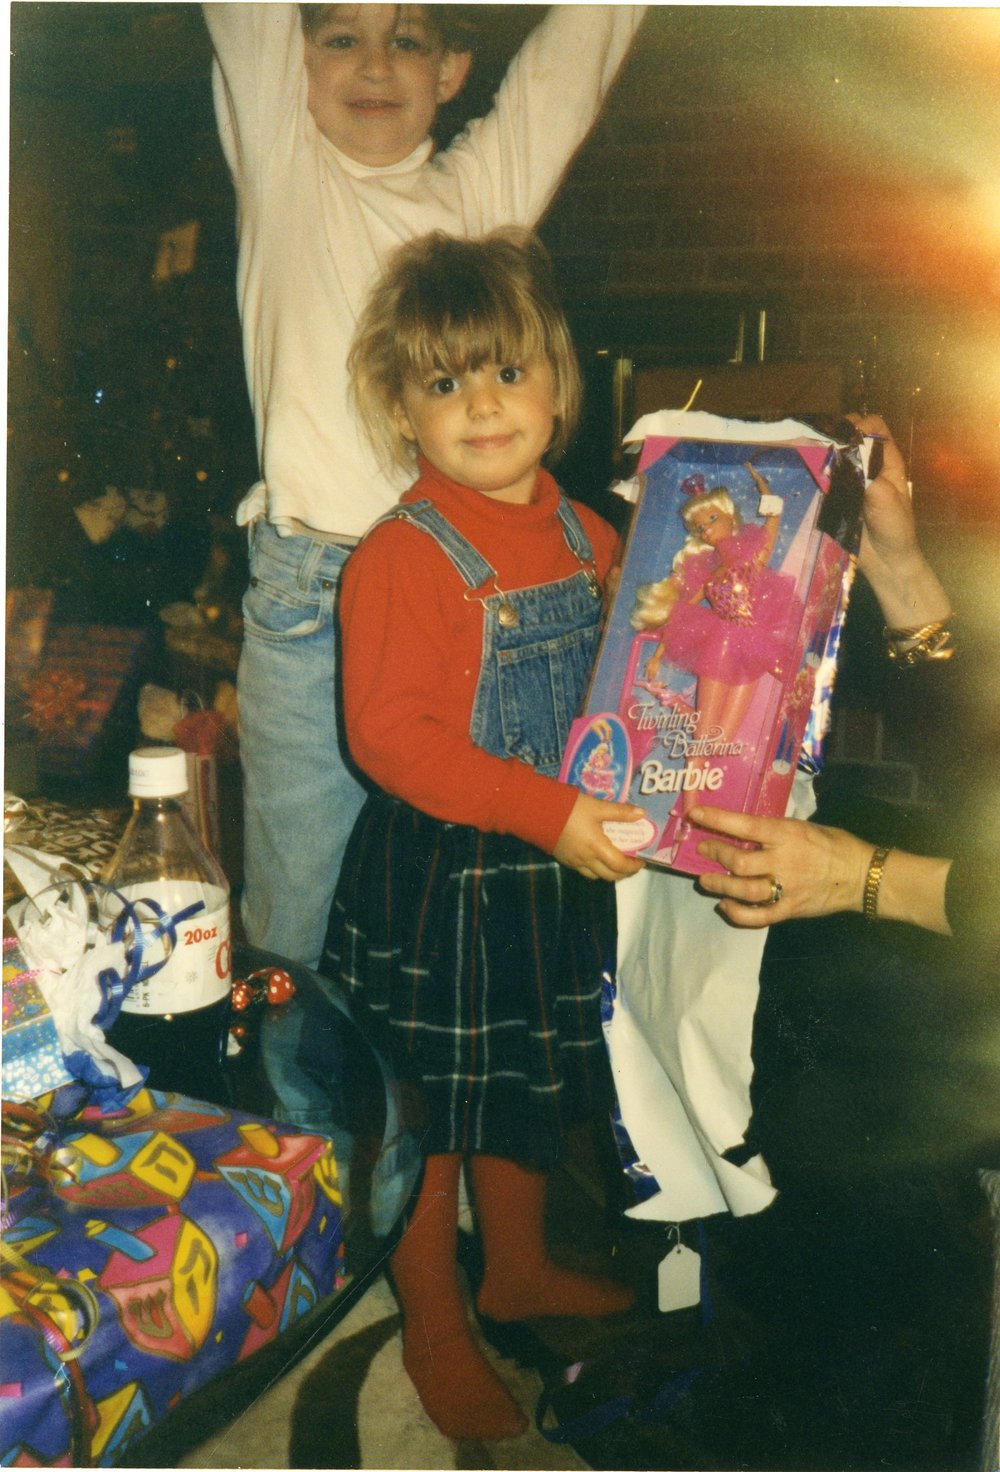 The author revels in her Hanukkah gift during a Hanukkah party. (Emily Levinson and her brother, Chase - 1990's)